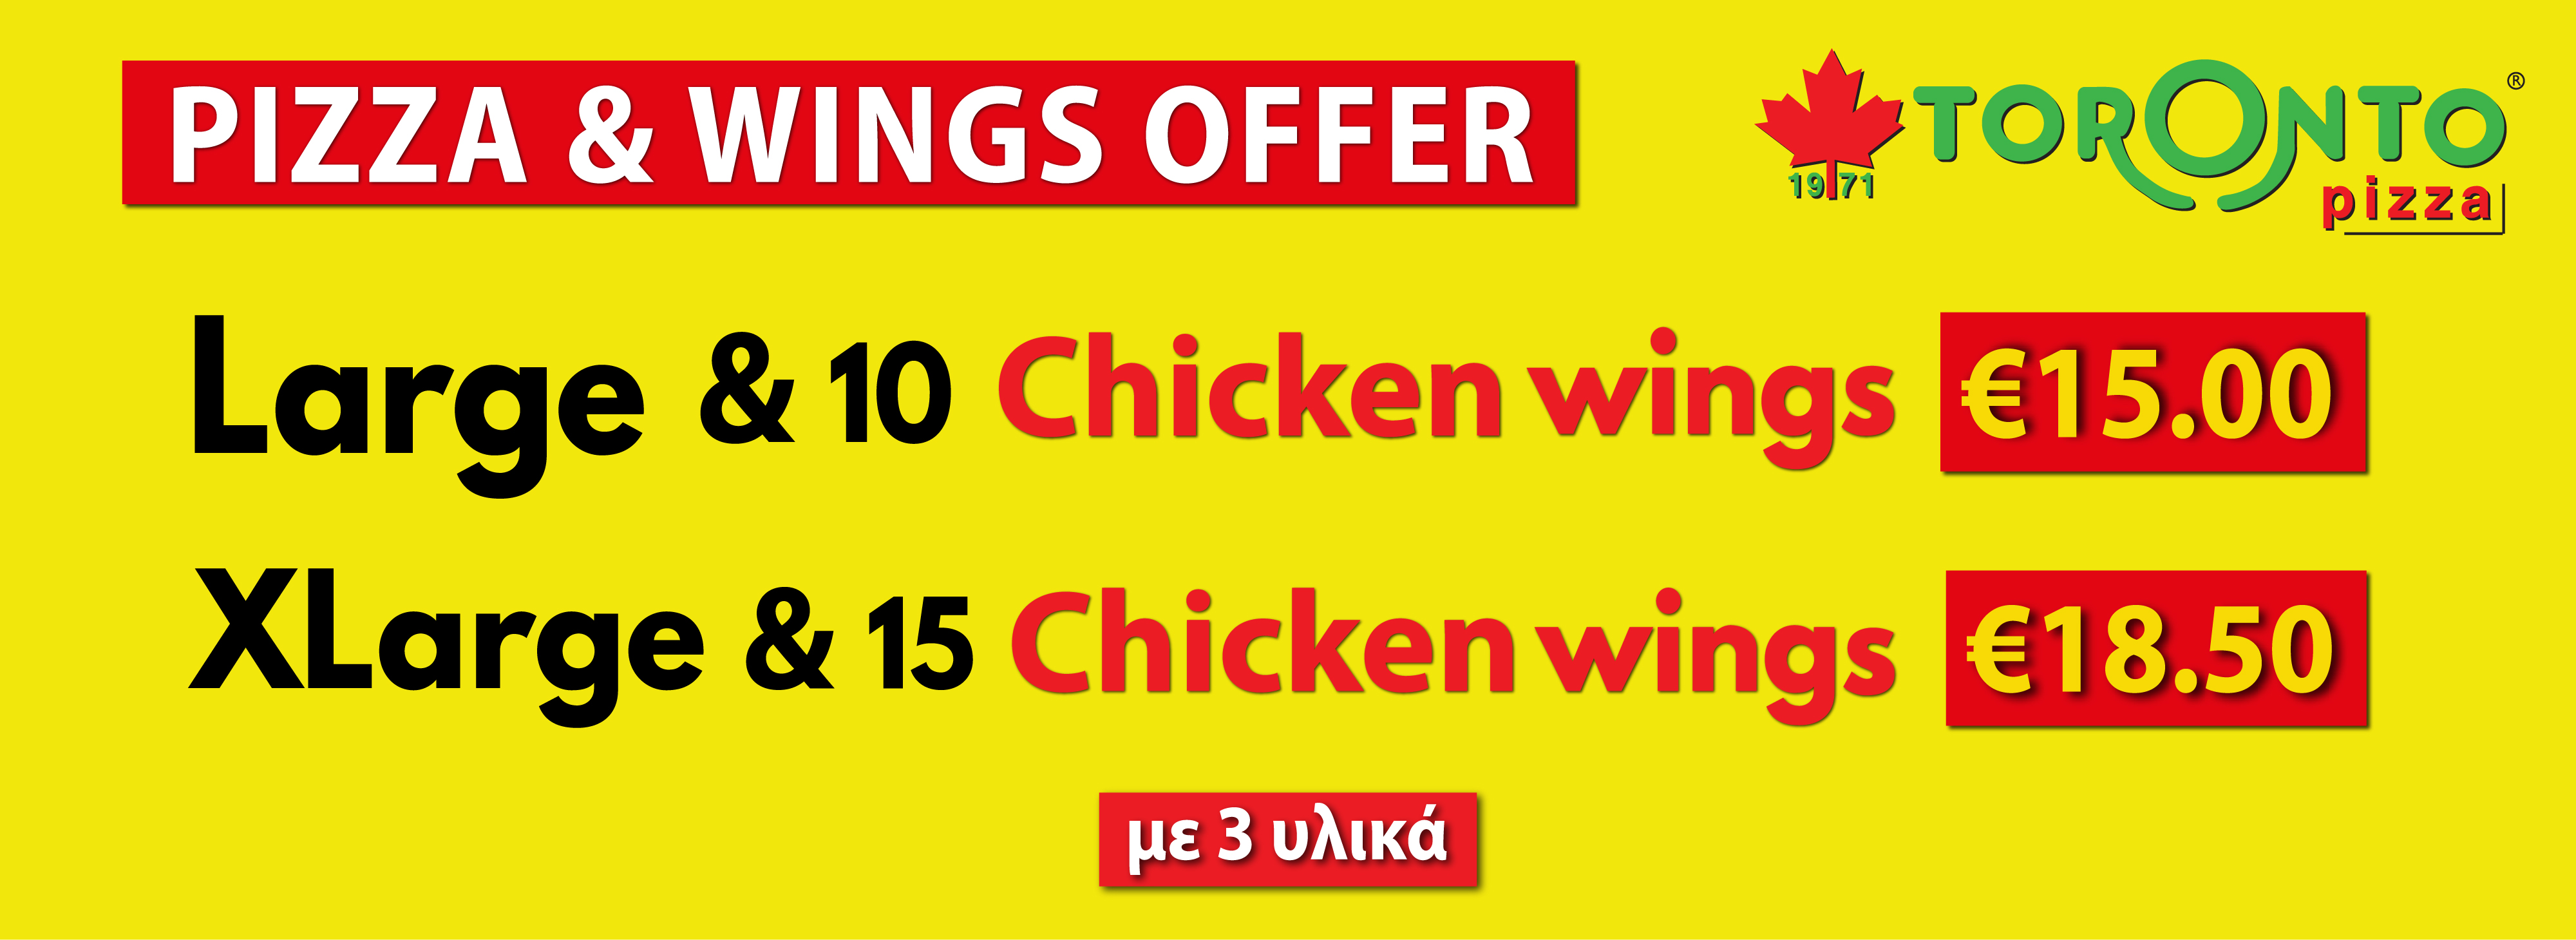 PIZZA OFFER & wings with 3 toppings